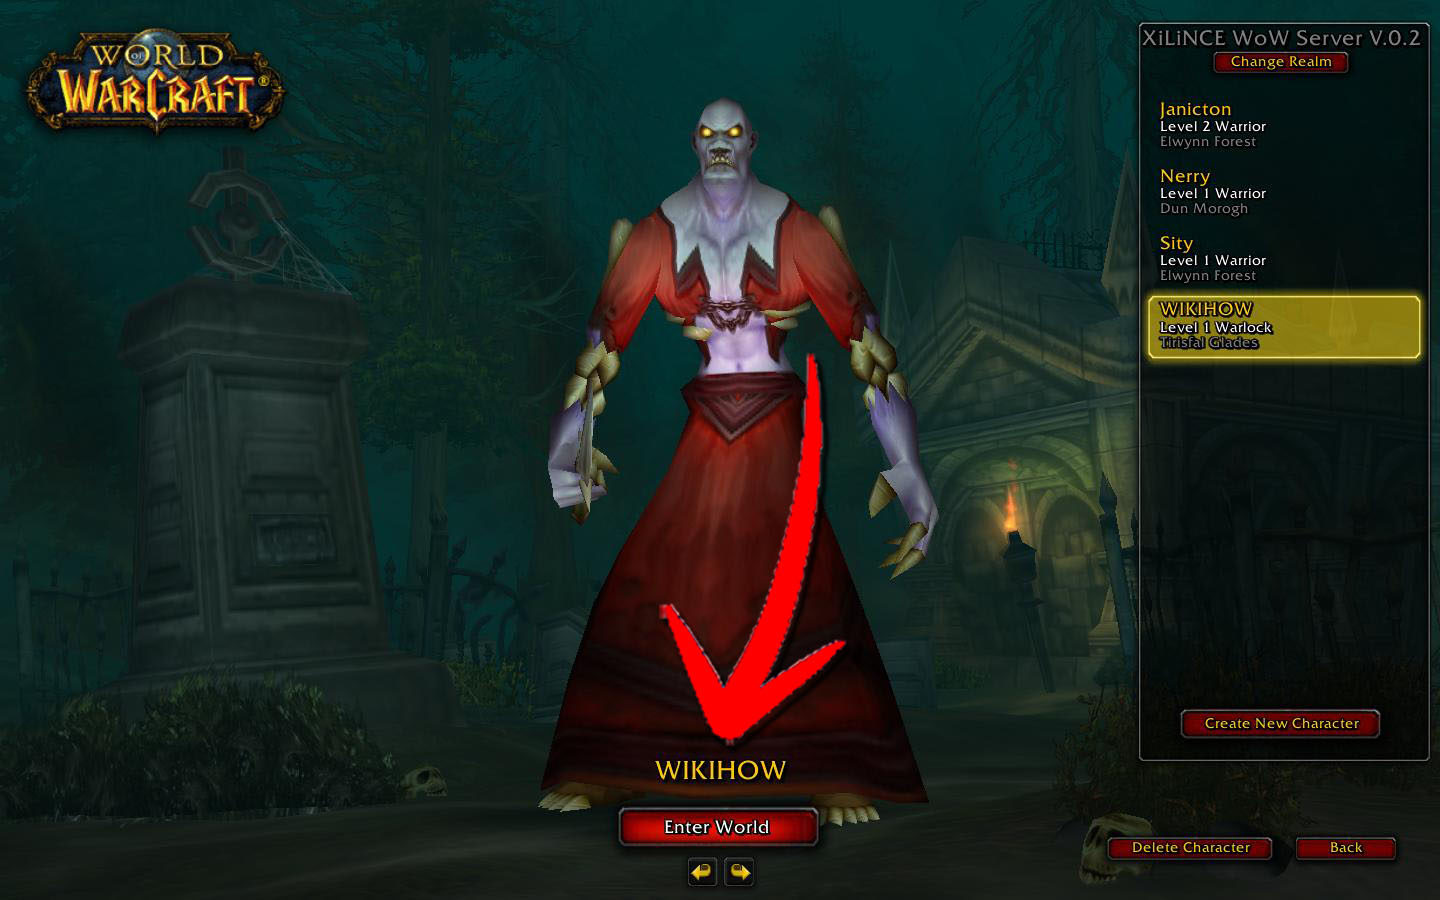 wikihowcomPick a Race and Class for the Horde in World of Warcraft 1440x900